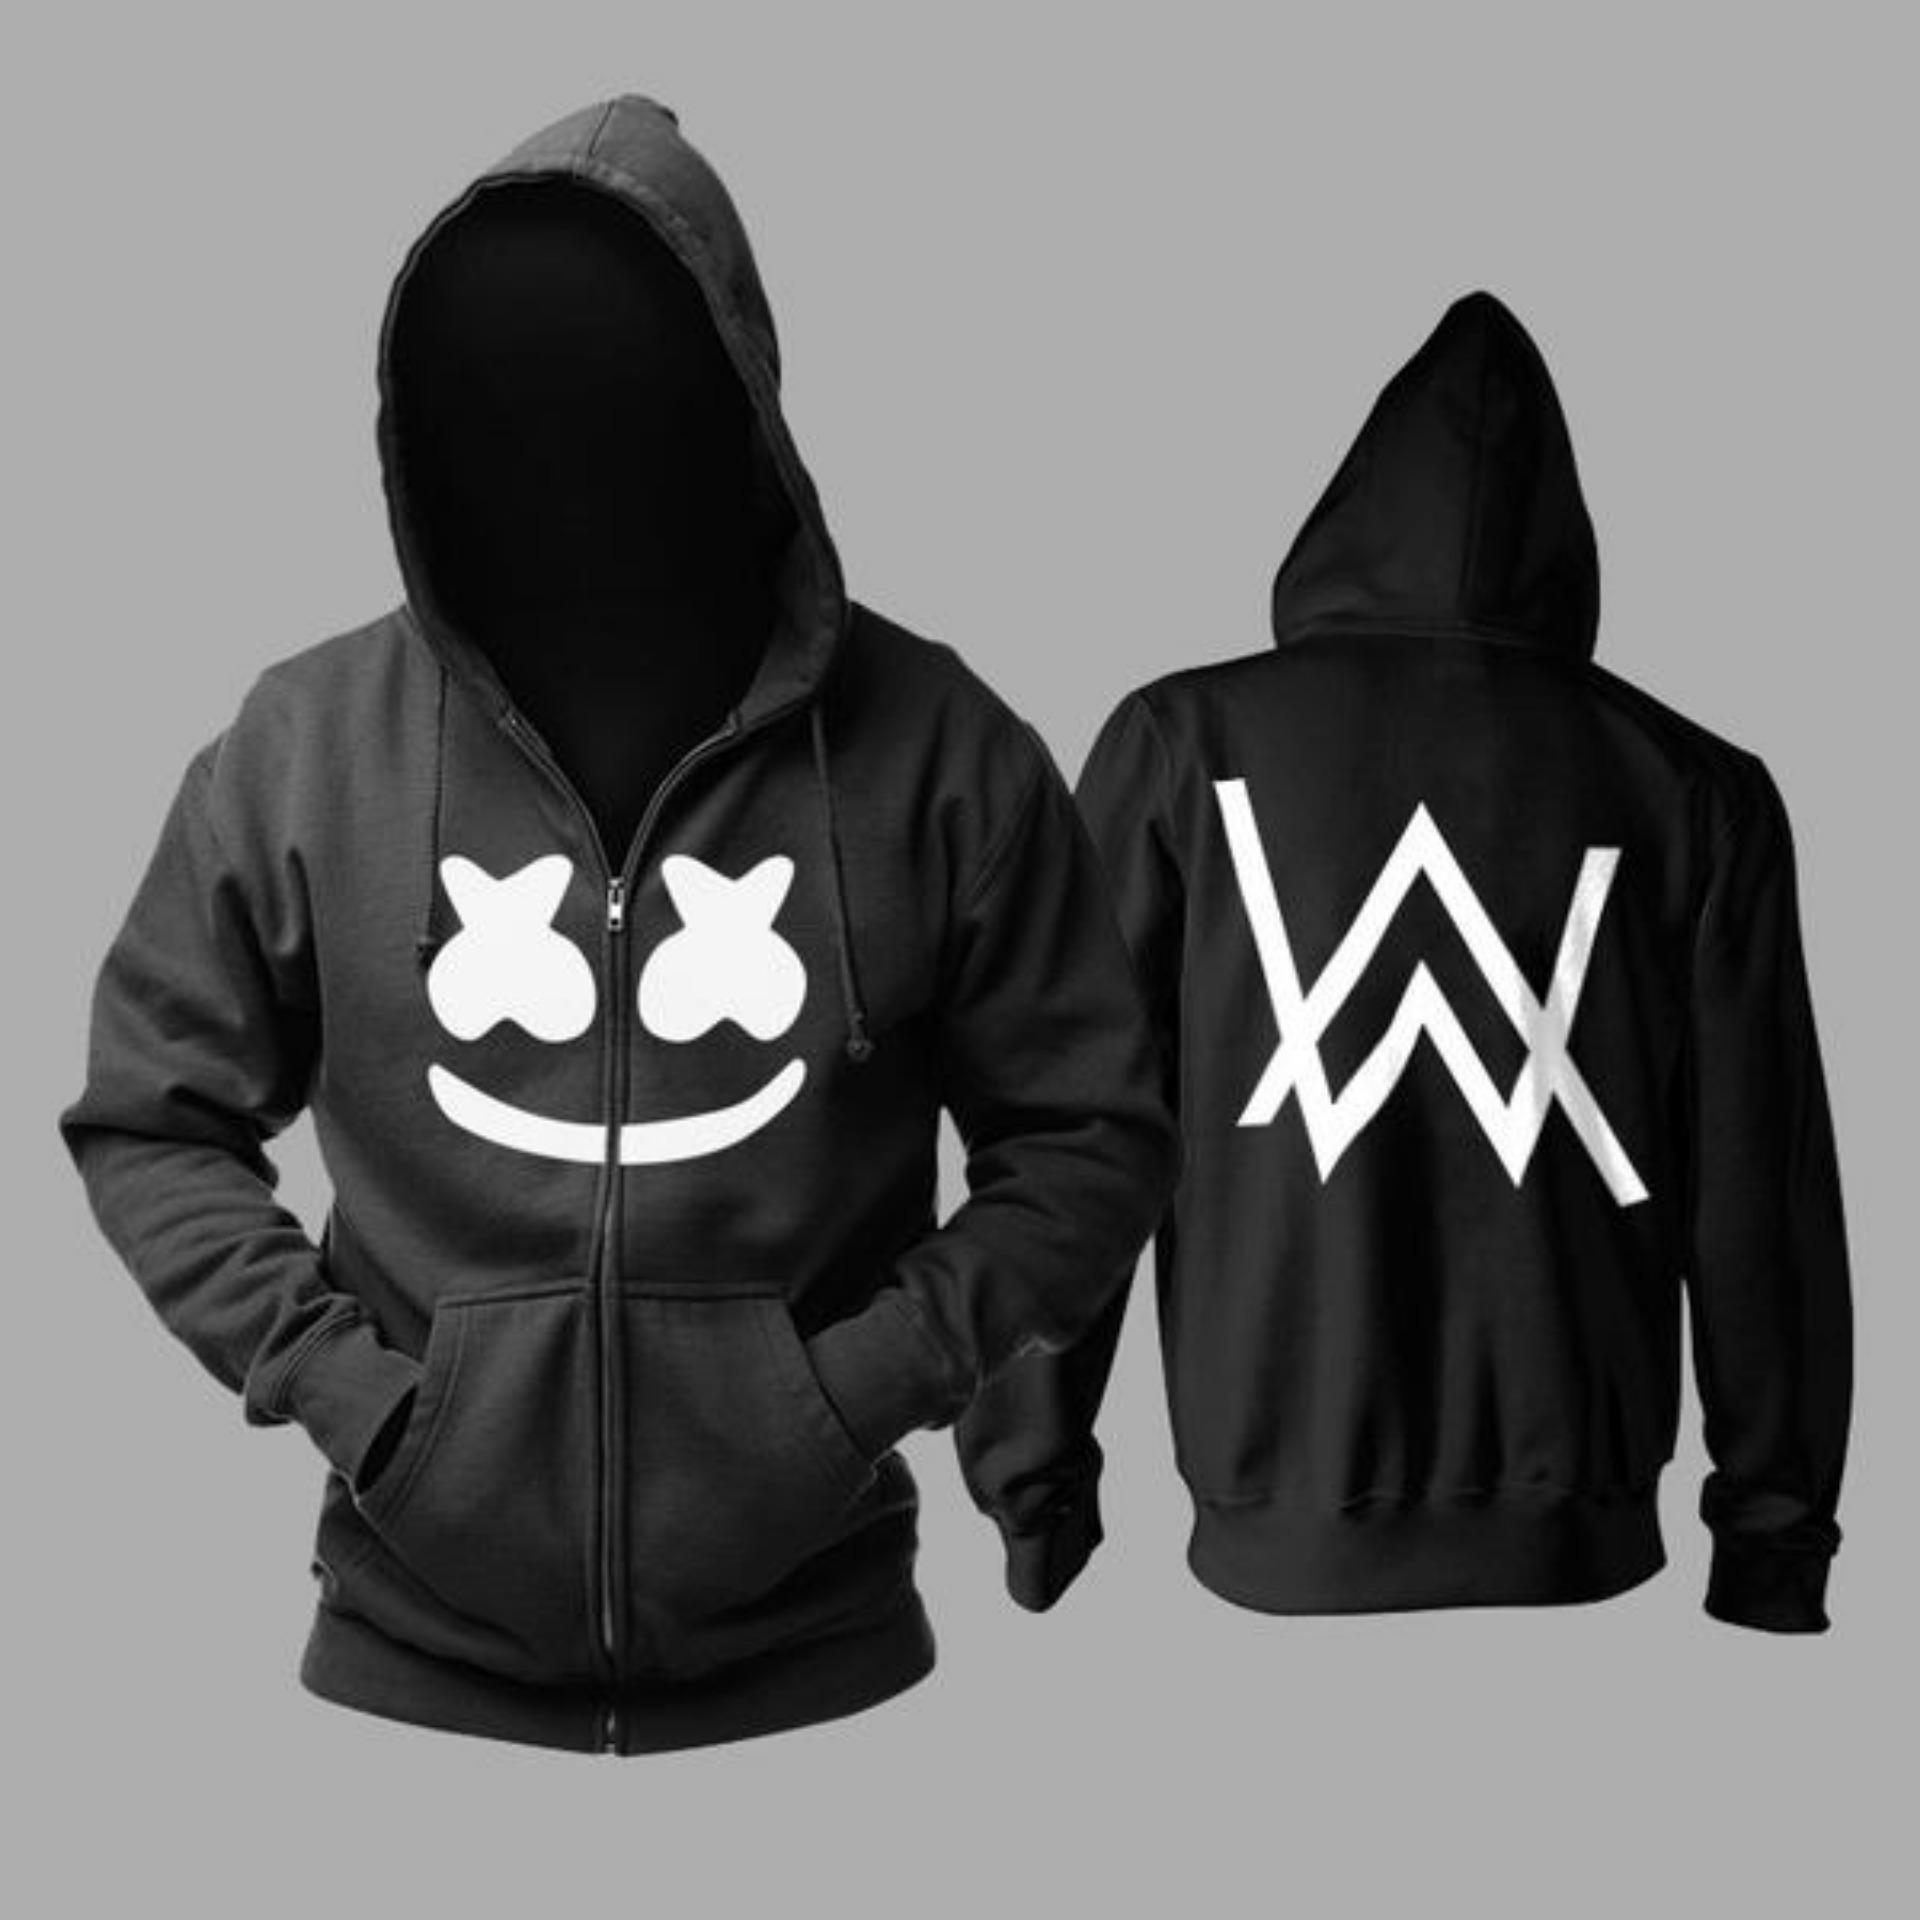 Beli Zipper Hoodie Marsmello Ft Alan Walker Hitam Lengkap